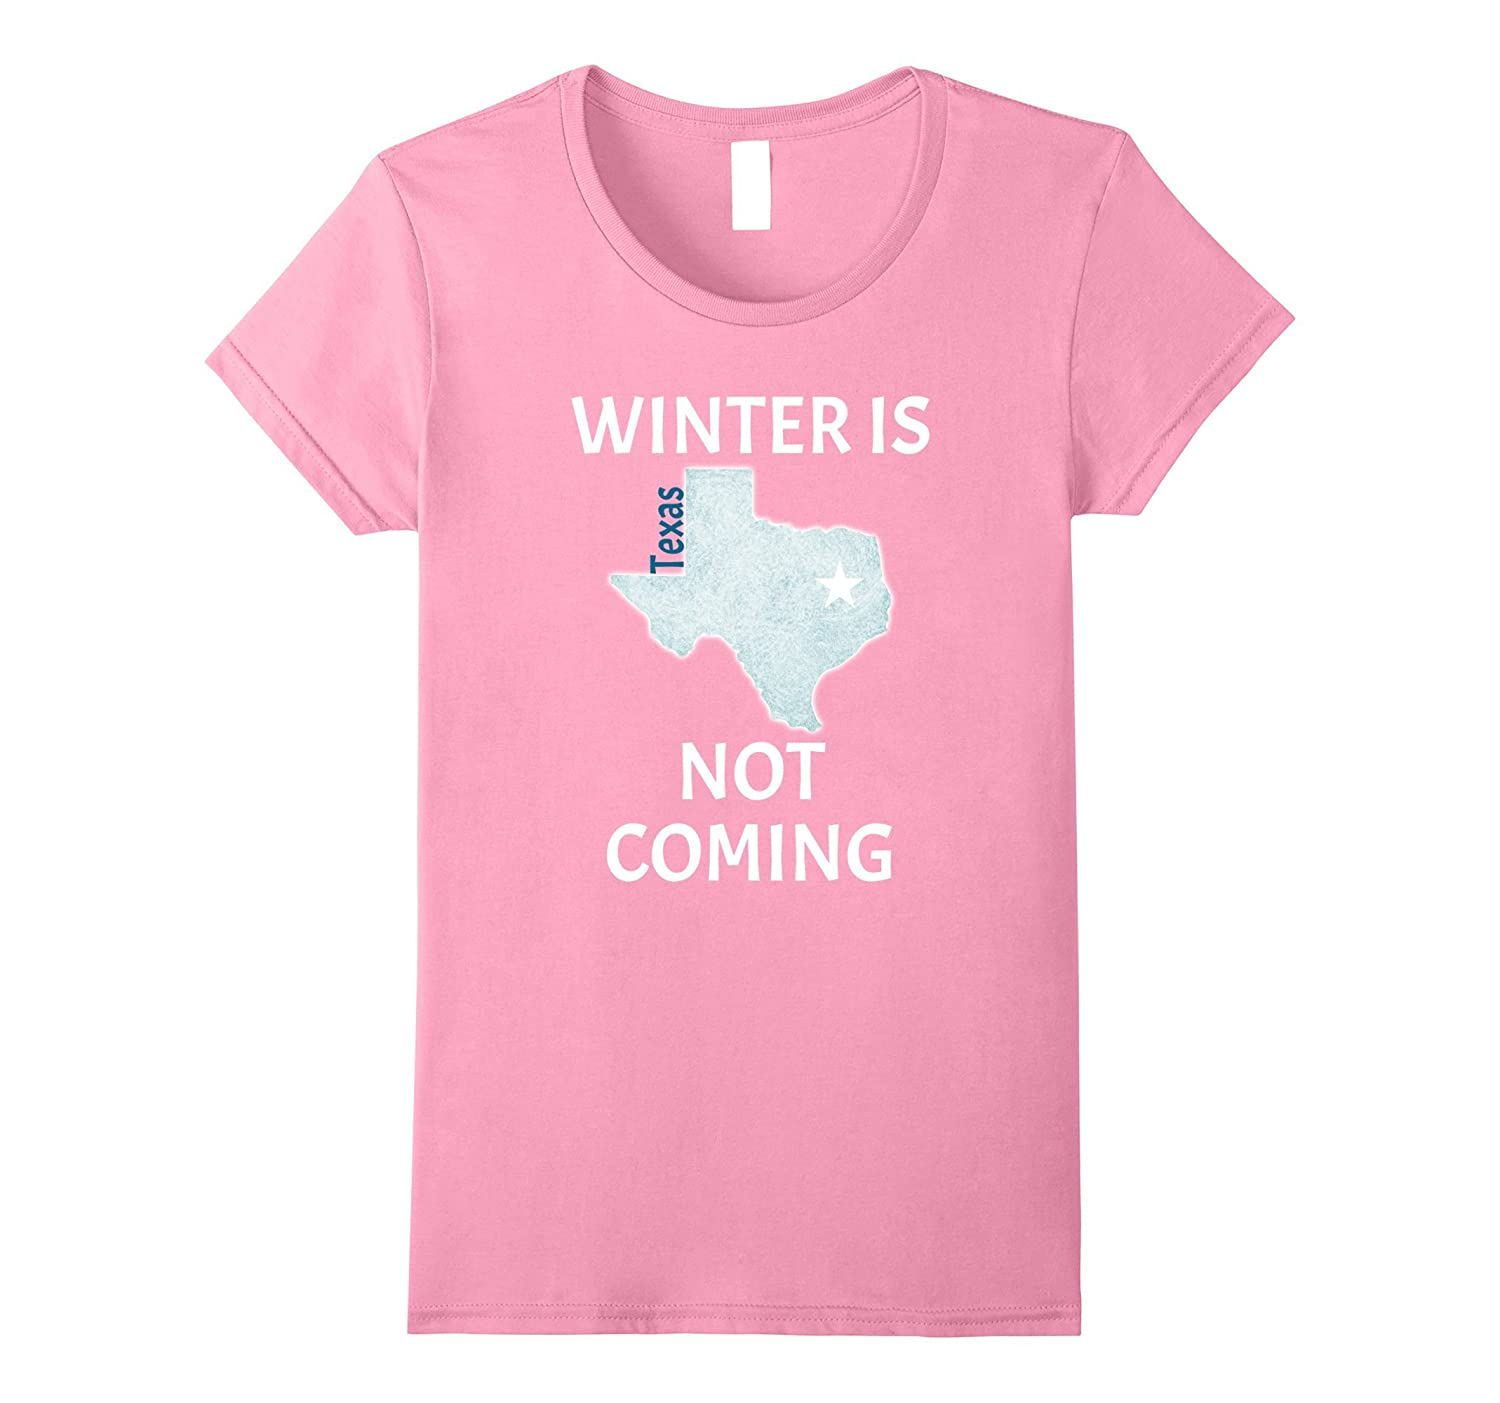 Winter is Not coming Texas shirts, funny tshirt